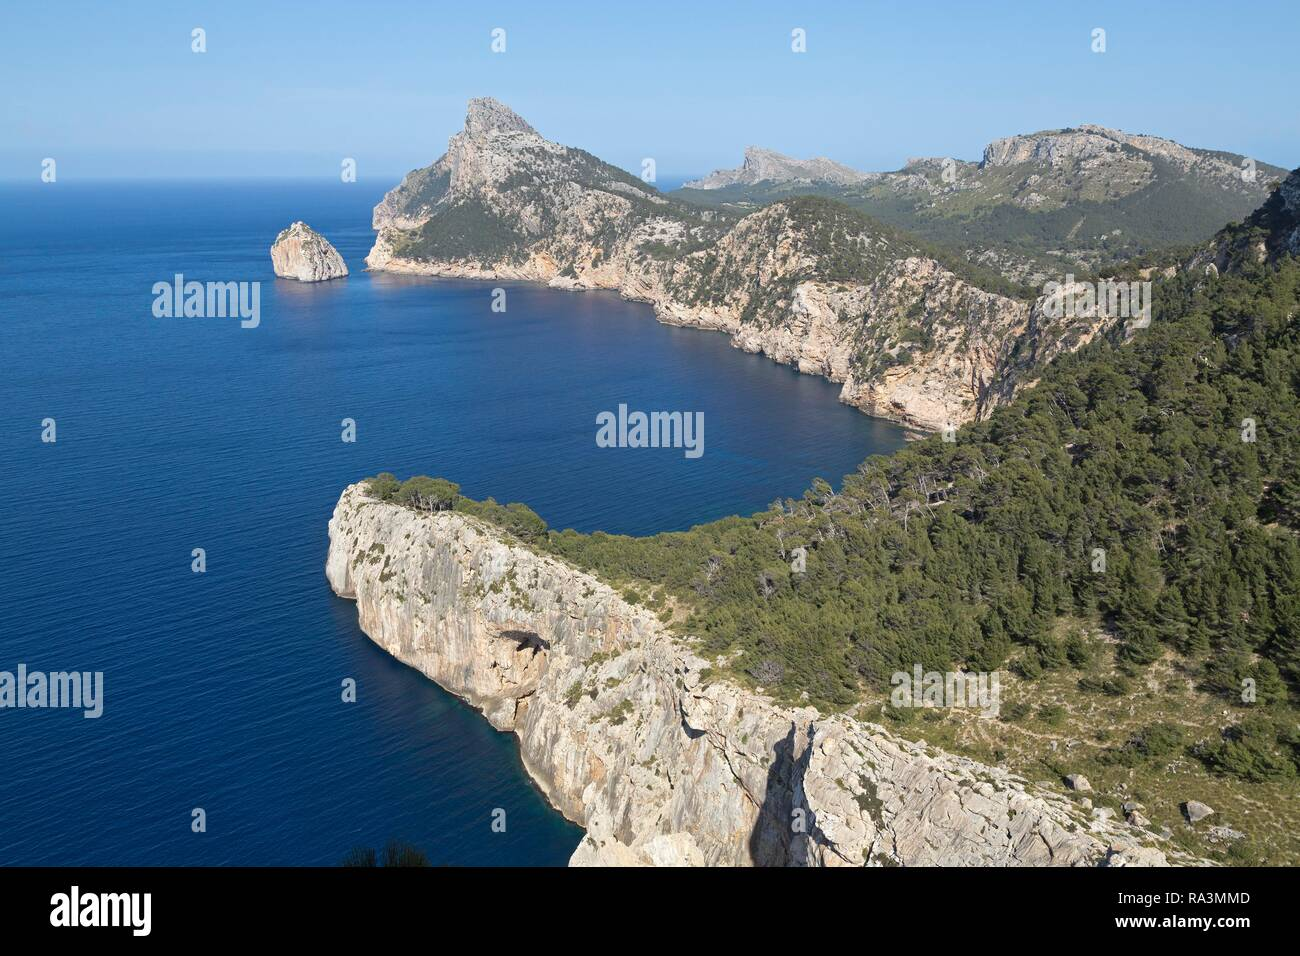 View from Mirador d' Es Colomer, also Mirador del Mal Pas on Formentor Peninsula, Majorca, Spain - Stock Image